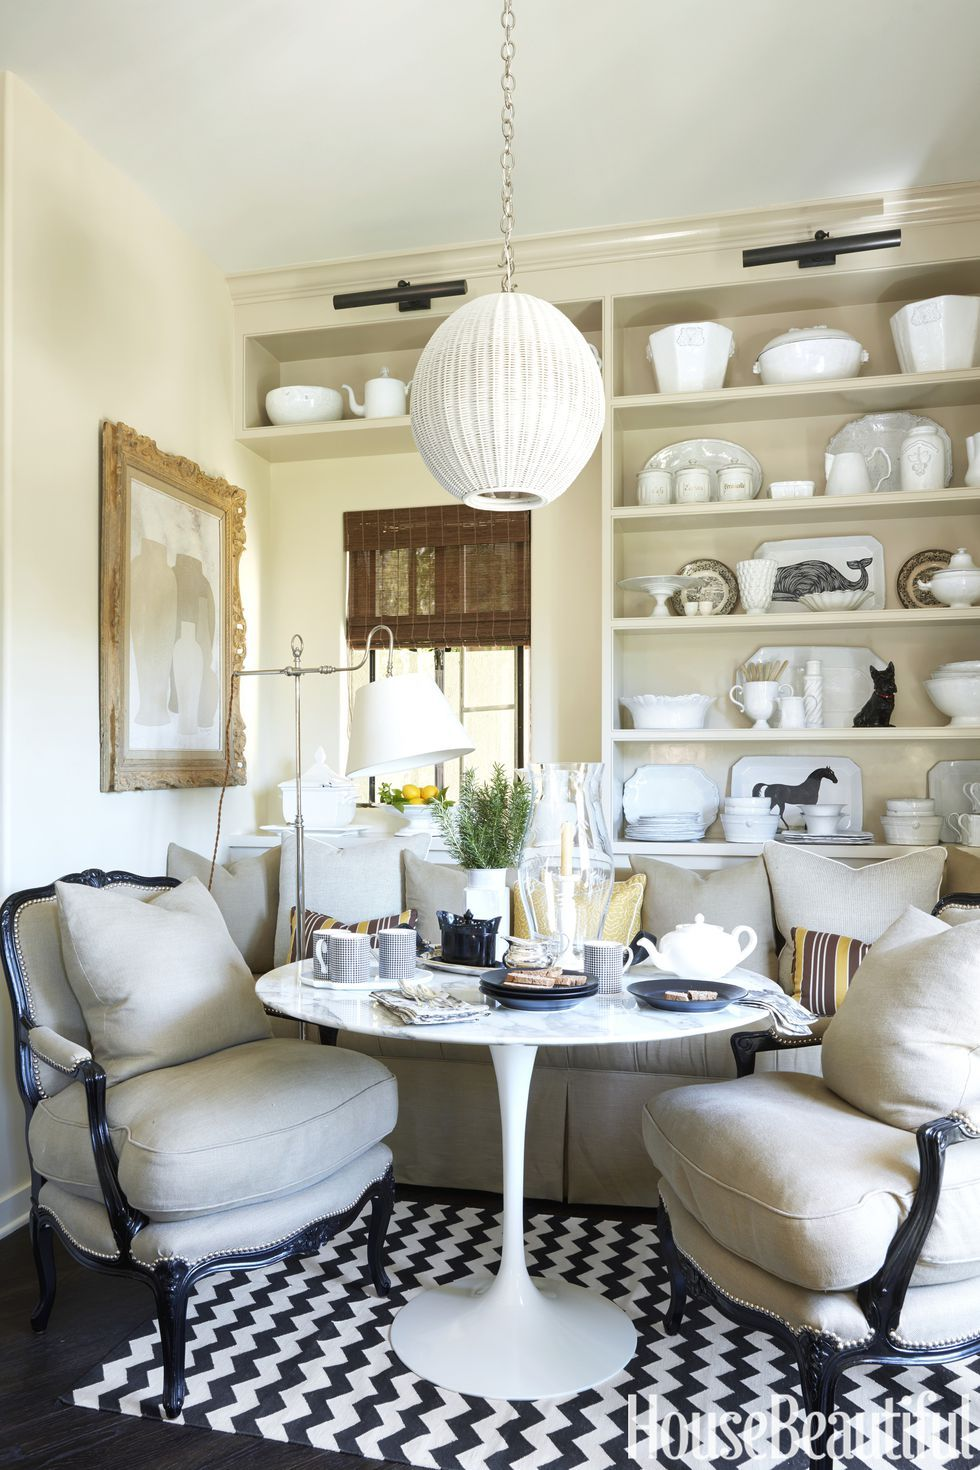 Inside a light-filled, Spanish-inspired bungalow in the Hollywood ...